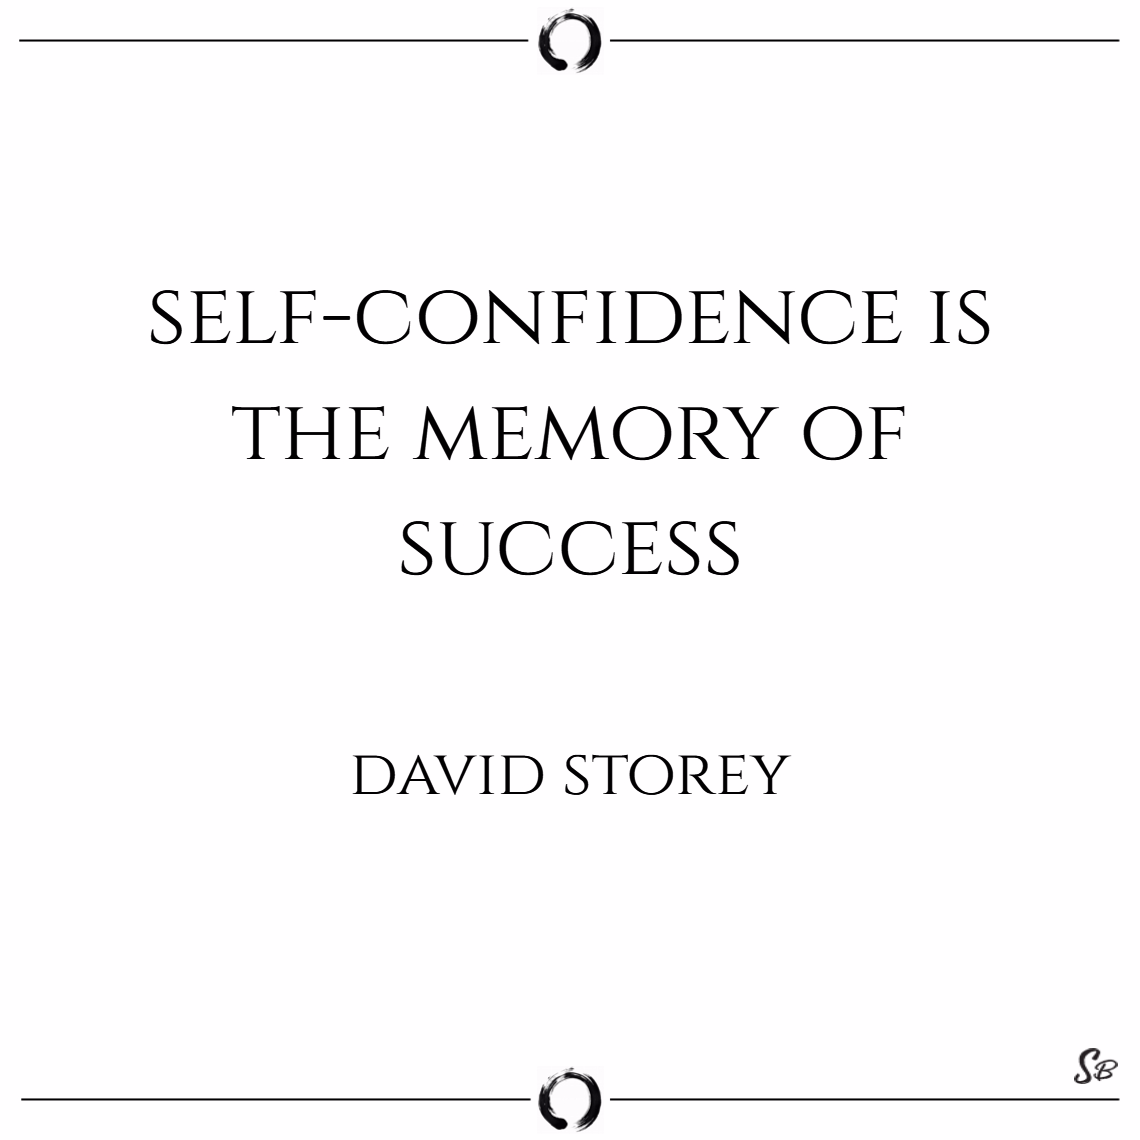 Self confidence is the memory of success. – david storey